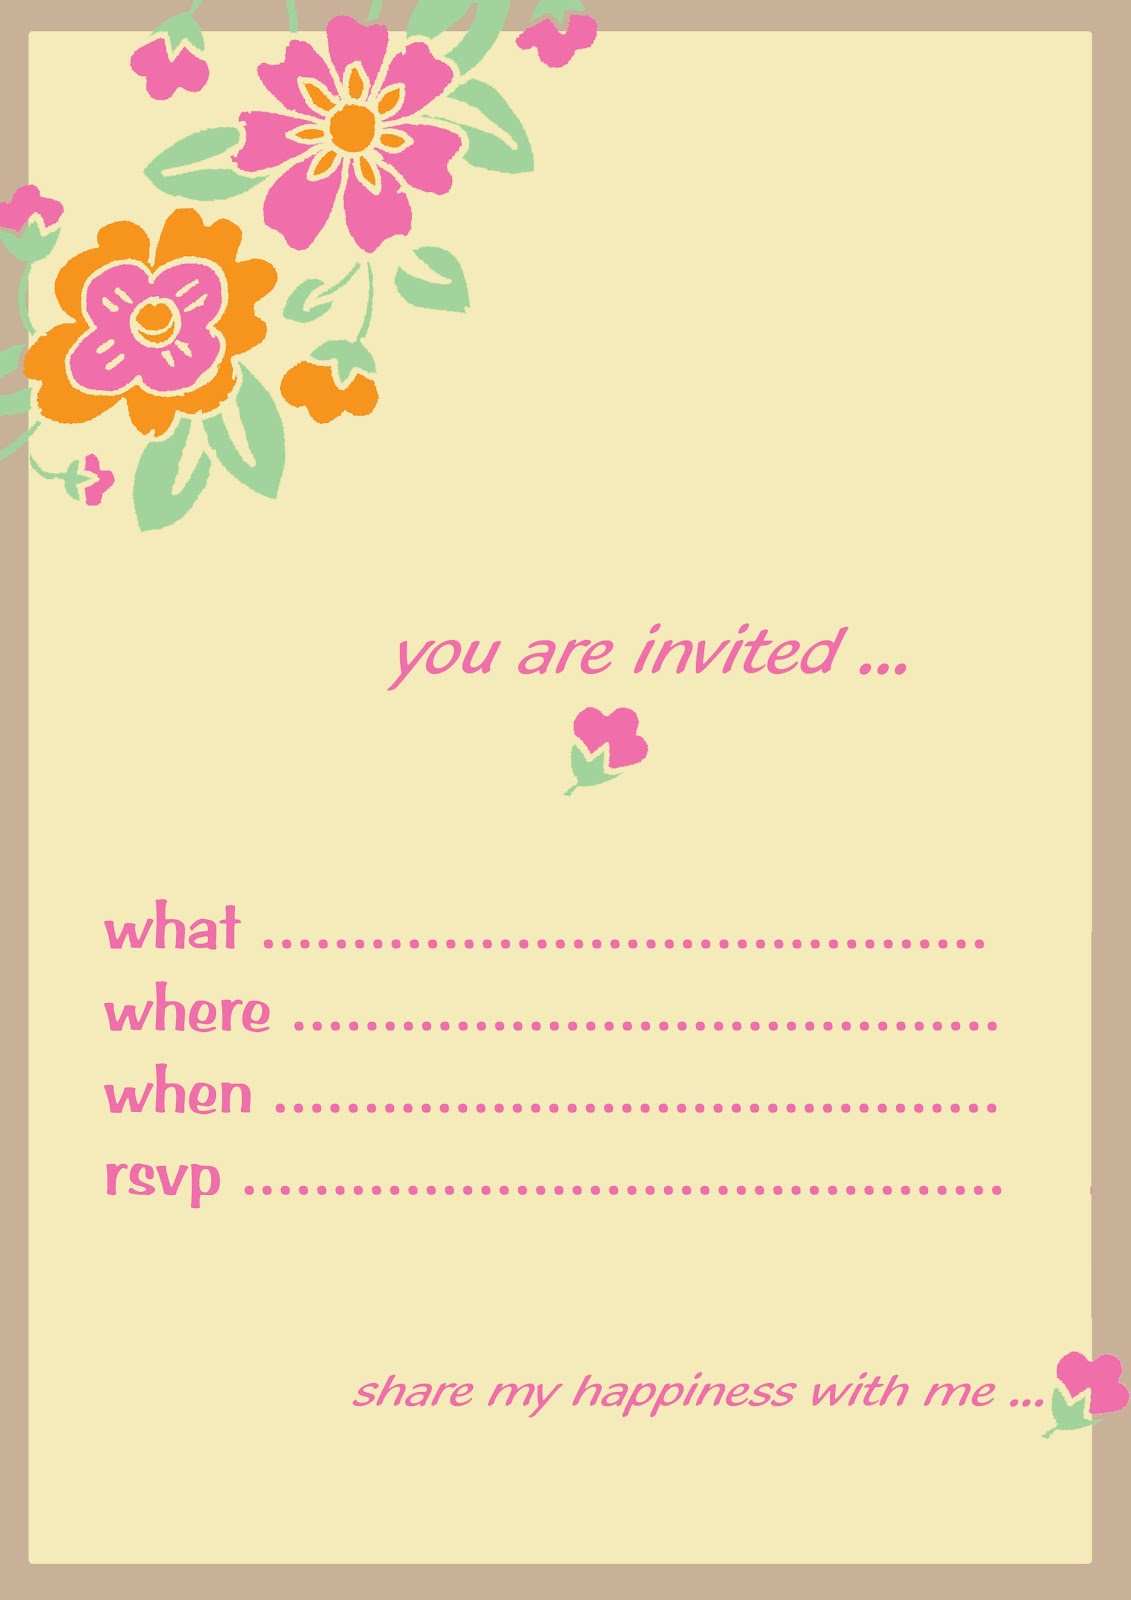 designs for birthday invitations